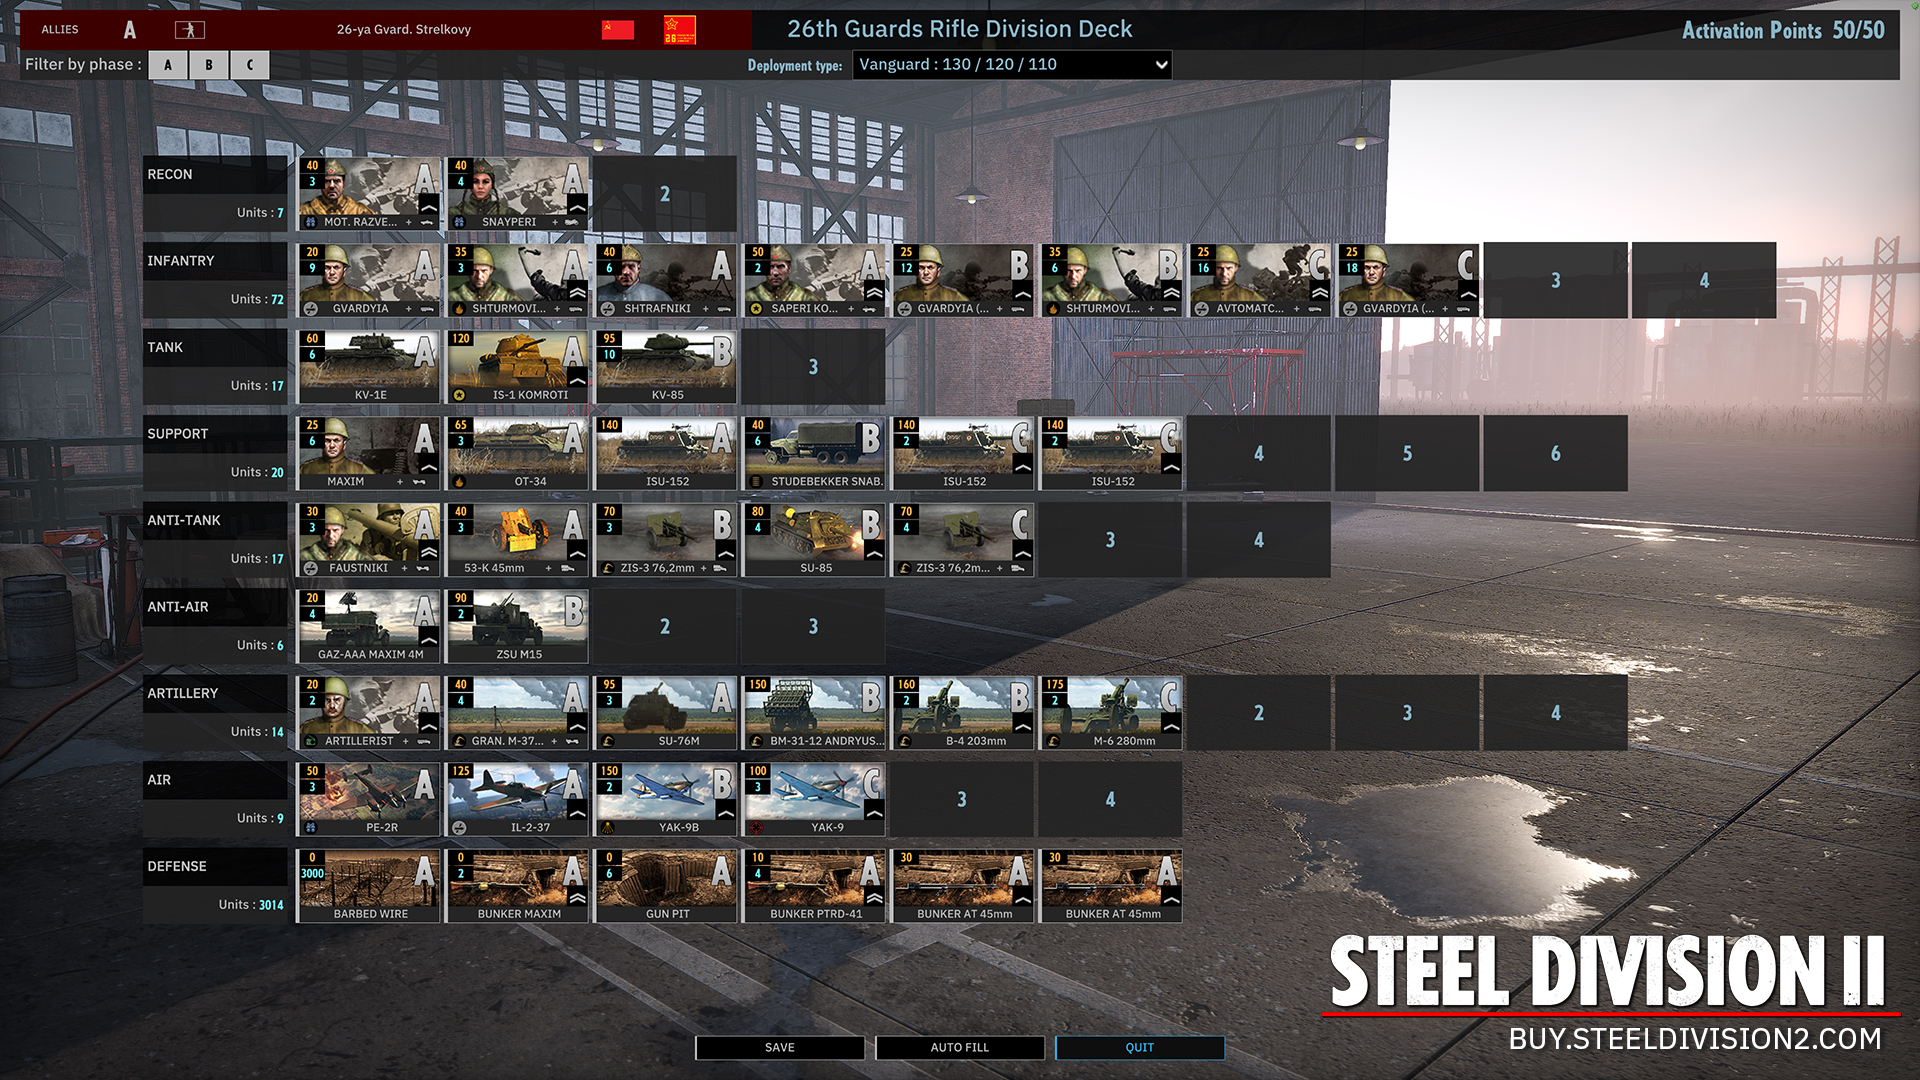 Steam Community :: Steel Division 2 :: Events